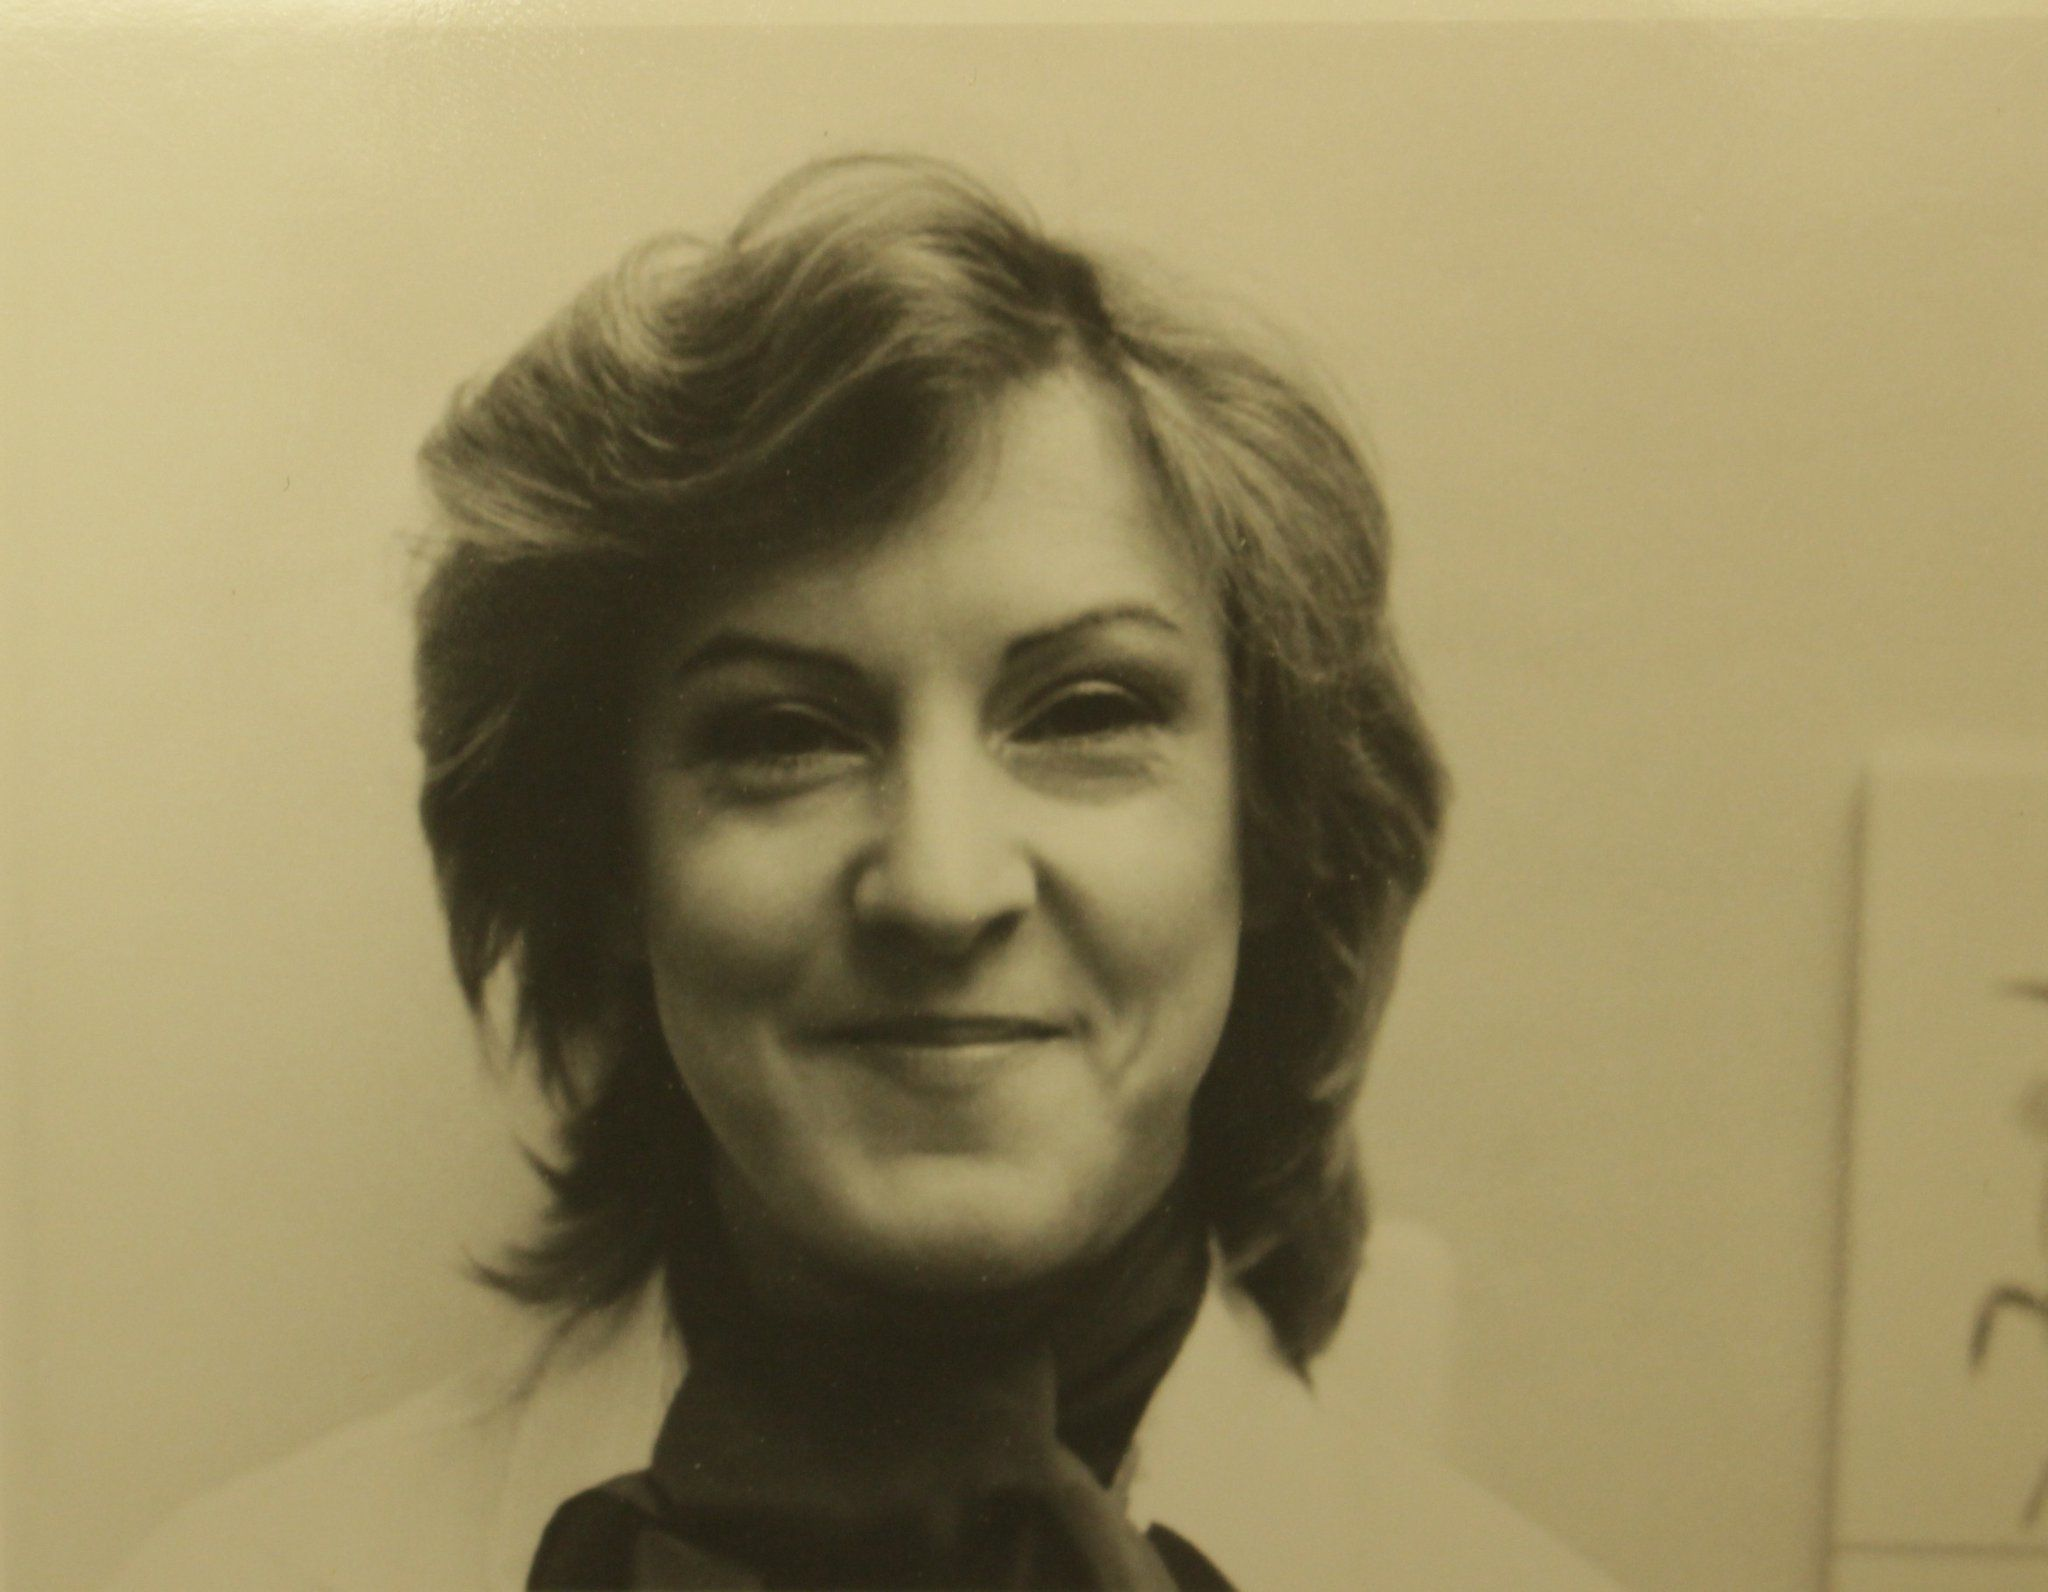 Police Re-Appeal For Information In 1983 Janice Weston Murder